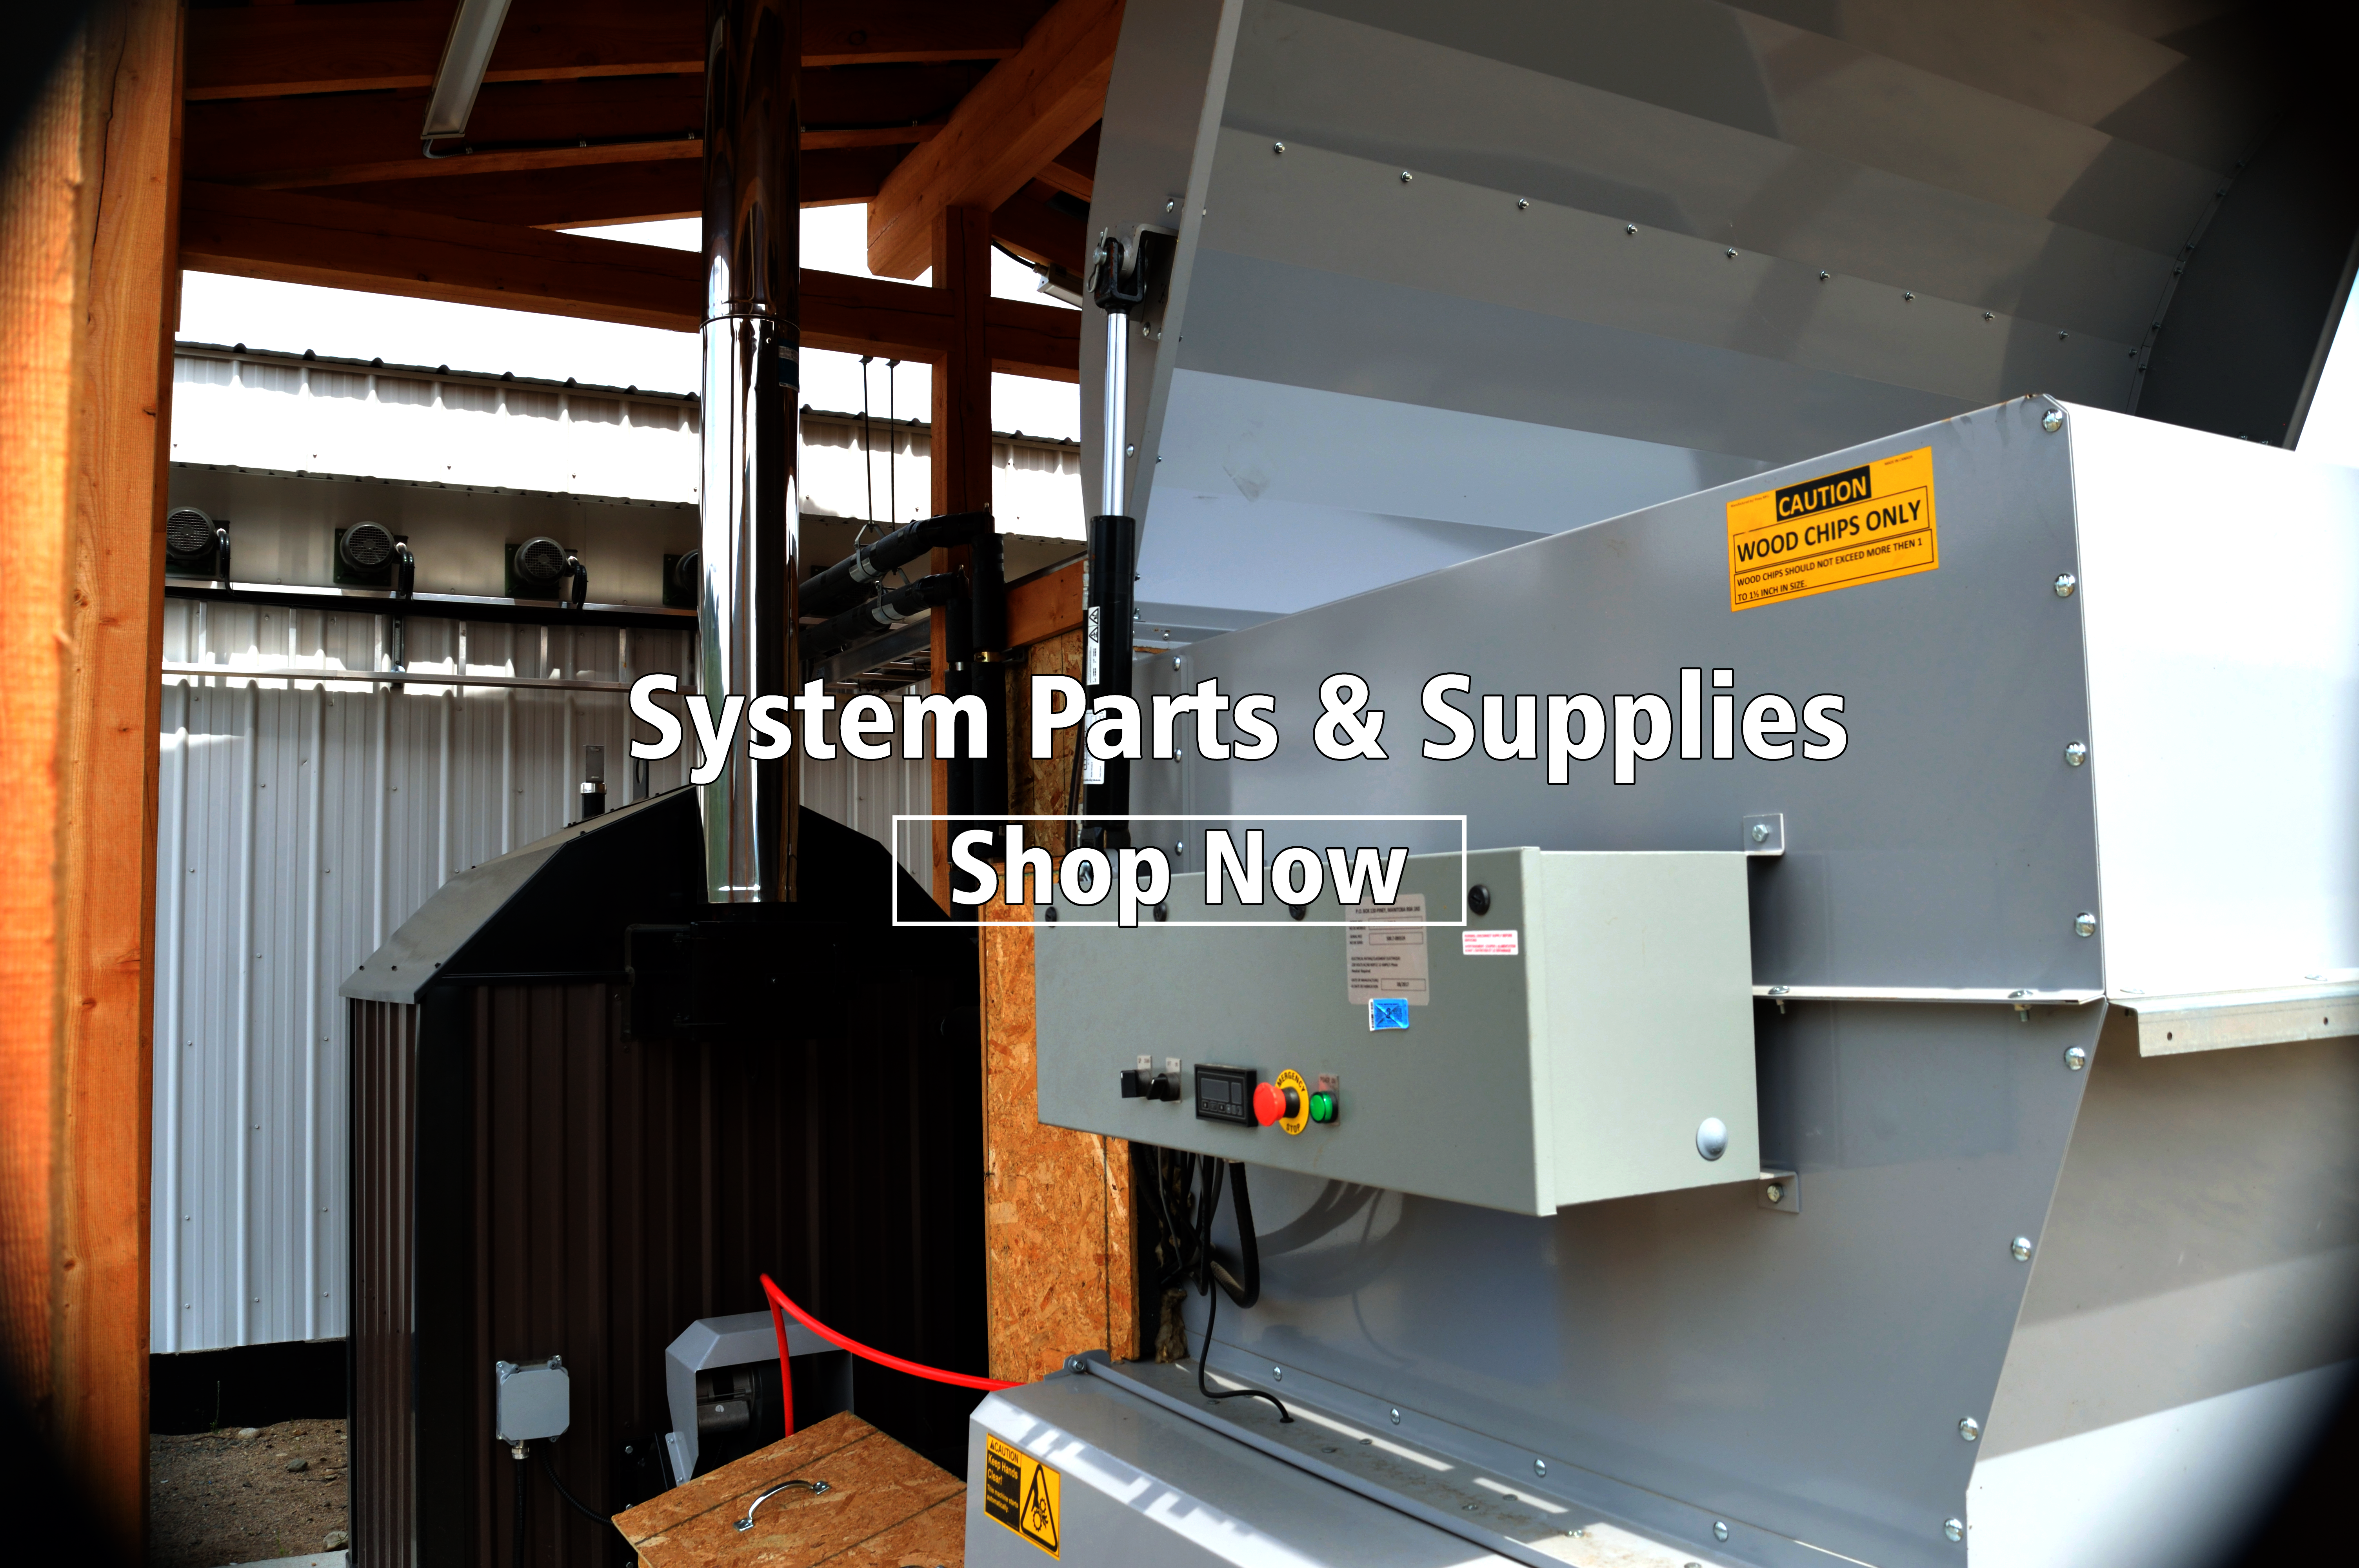 System Parts & Supplies